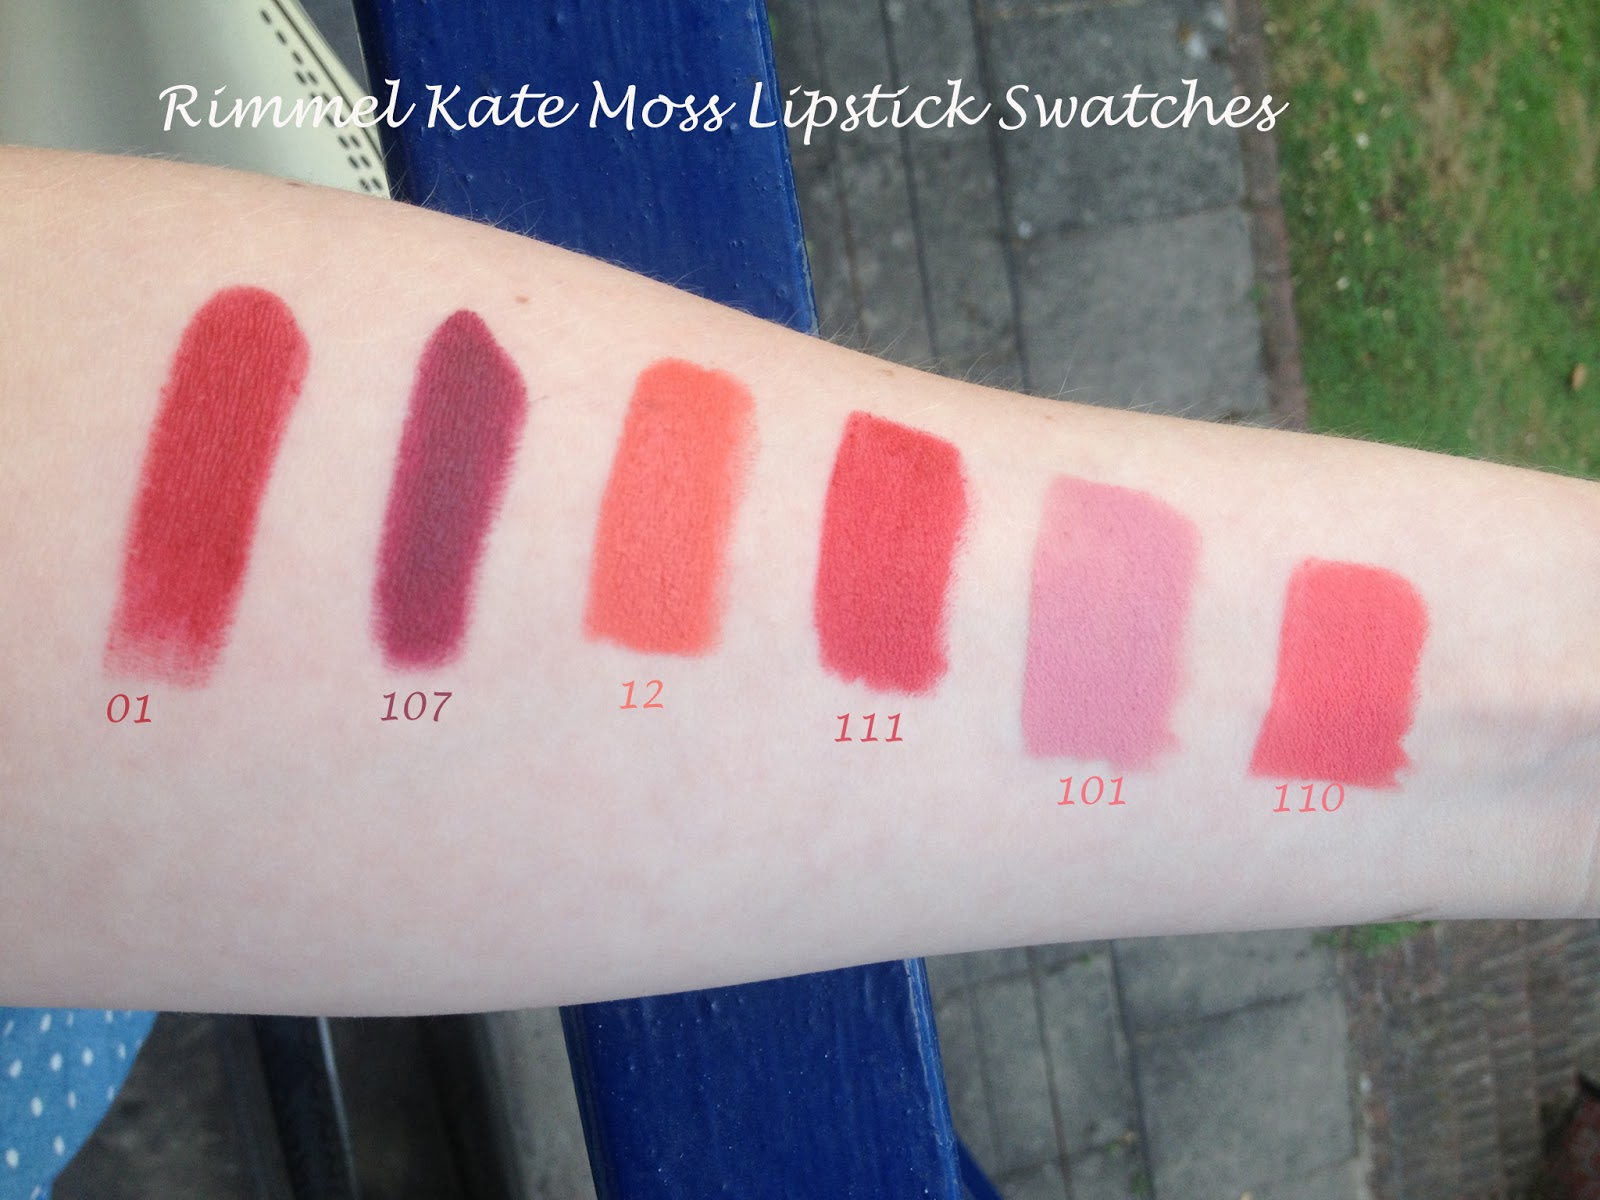 Inspiration for the imagination: Rimmel Kate Moss Lipstick Swatches